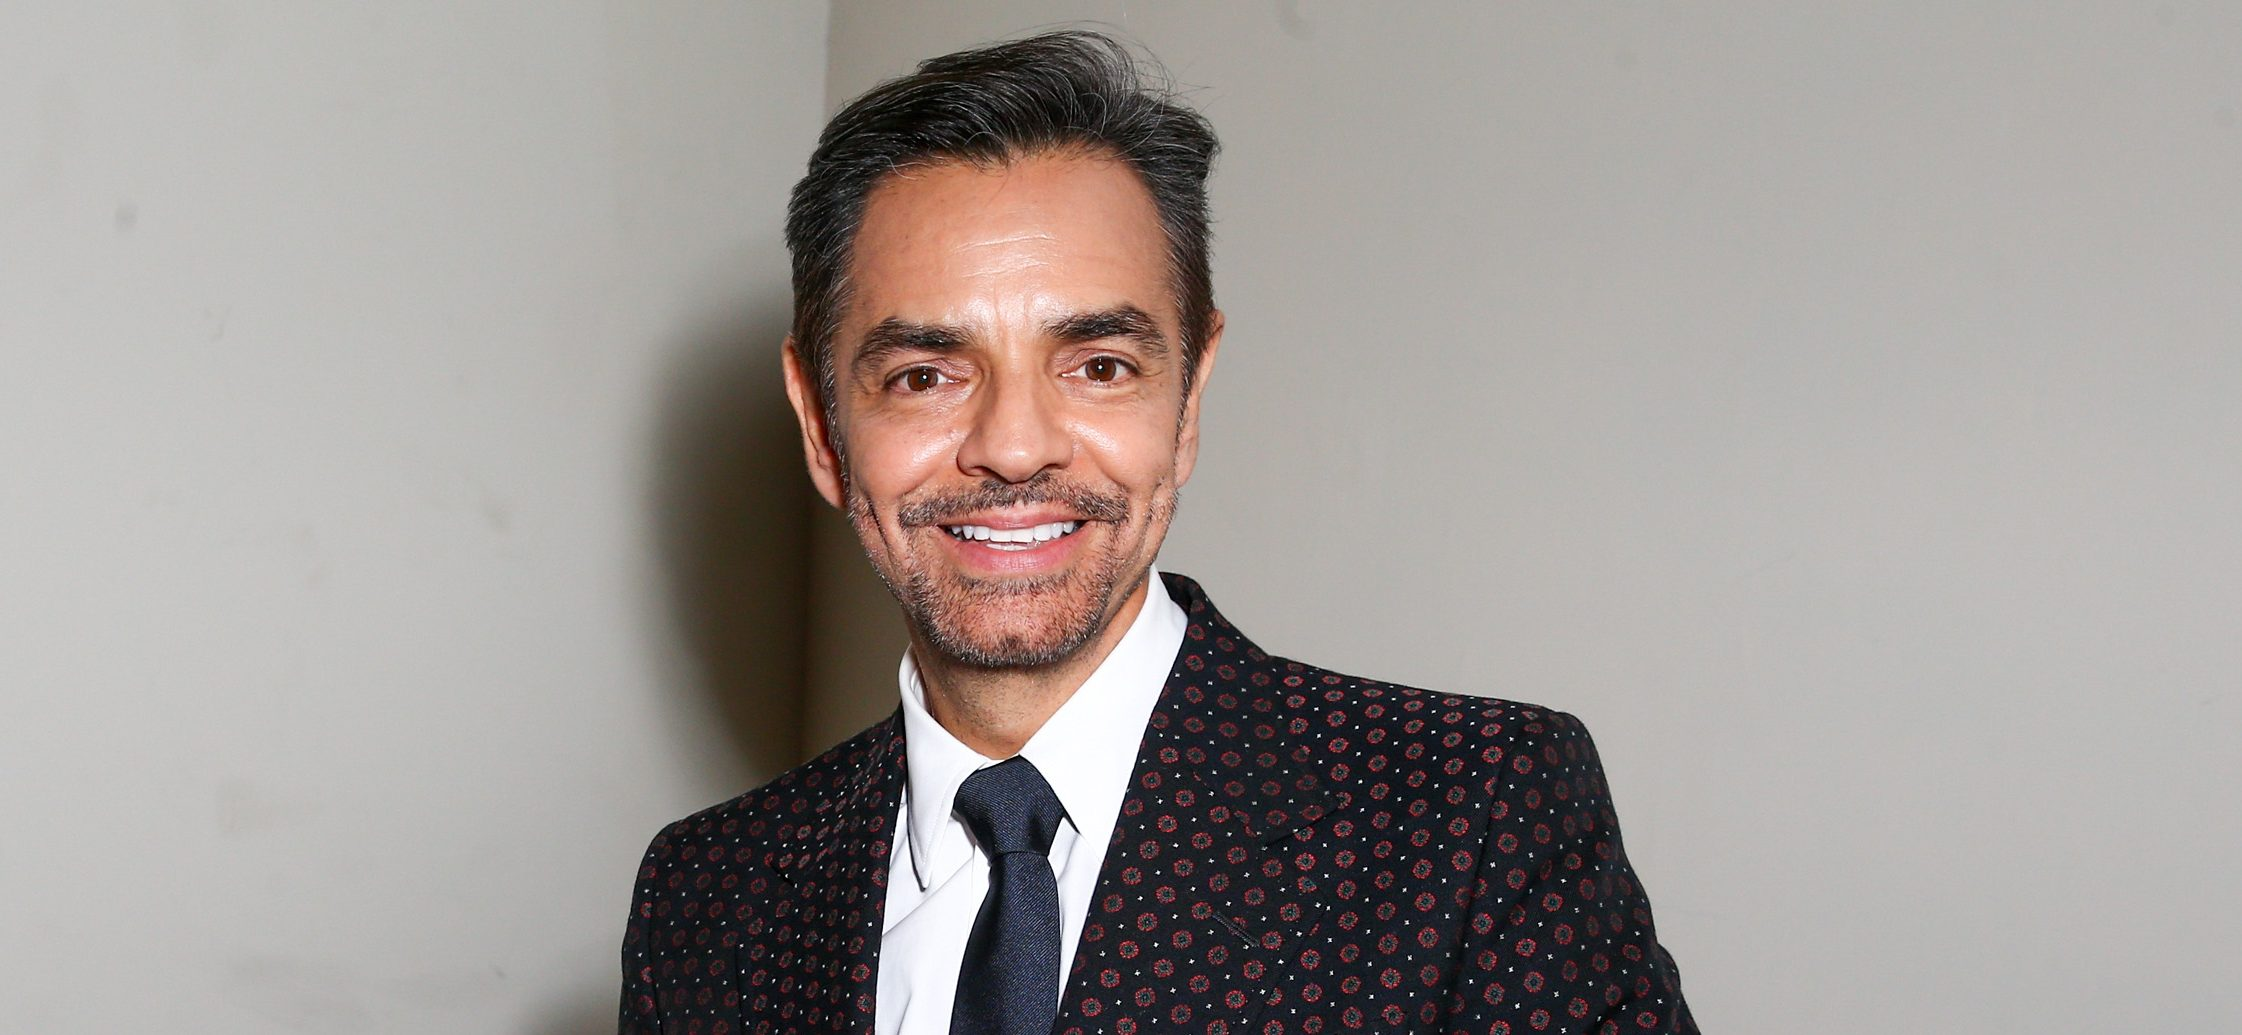 Gringos Were Confused About Who Eugenio Derbez Was After He Crashed Telemundo's Pre-Mexico-Germany Coverage